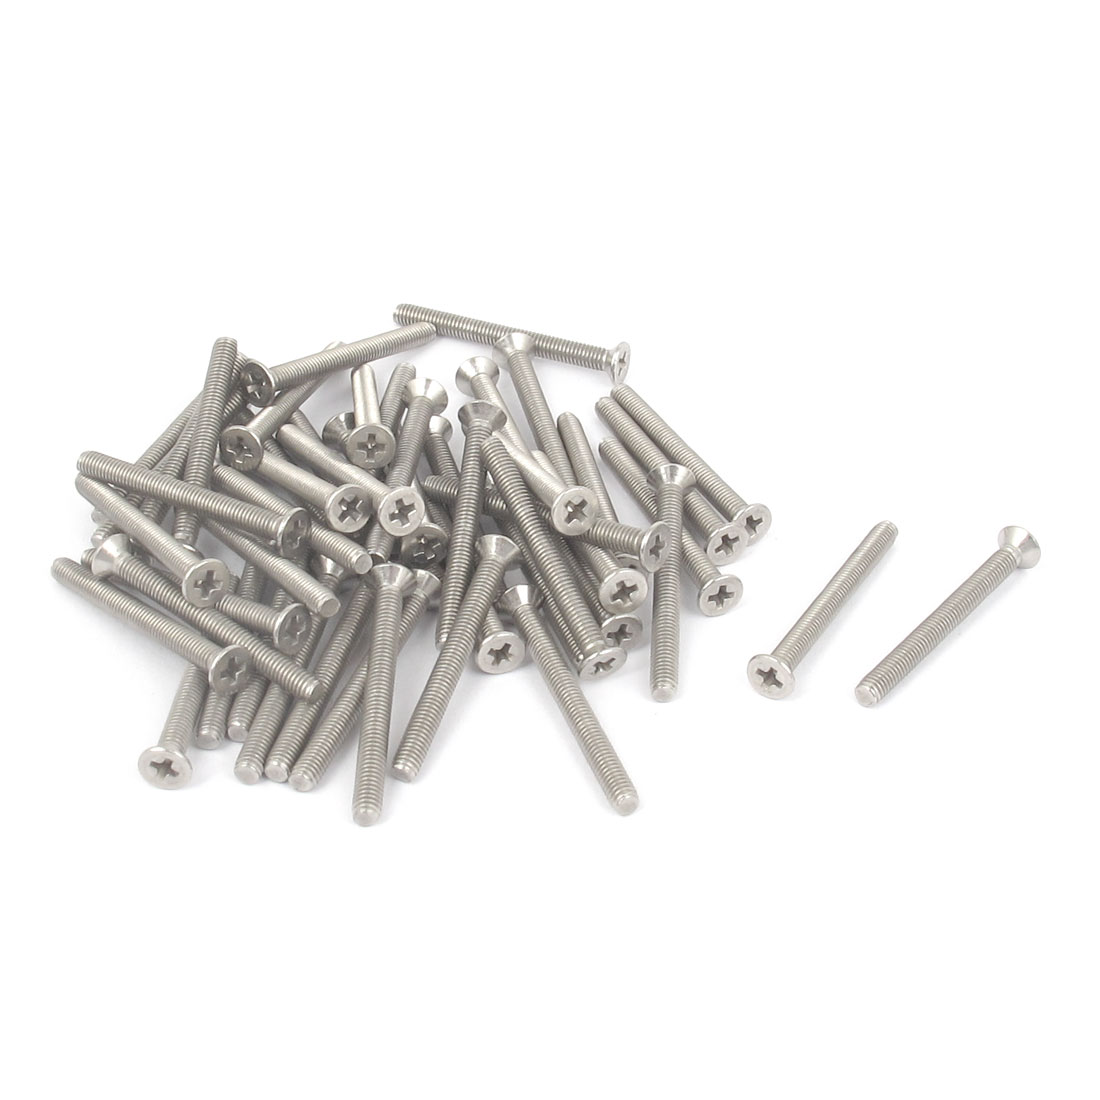 M3 x 30mm Metric Phillips Flat Head Countersunk Bolts Machine Screws 50pcs